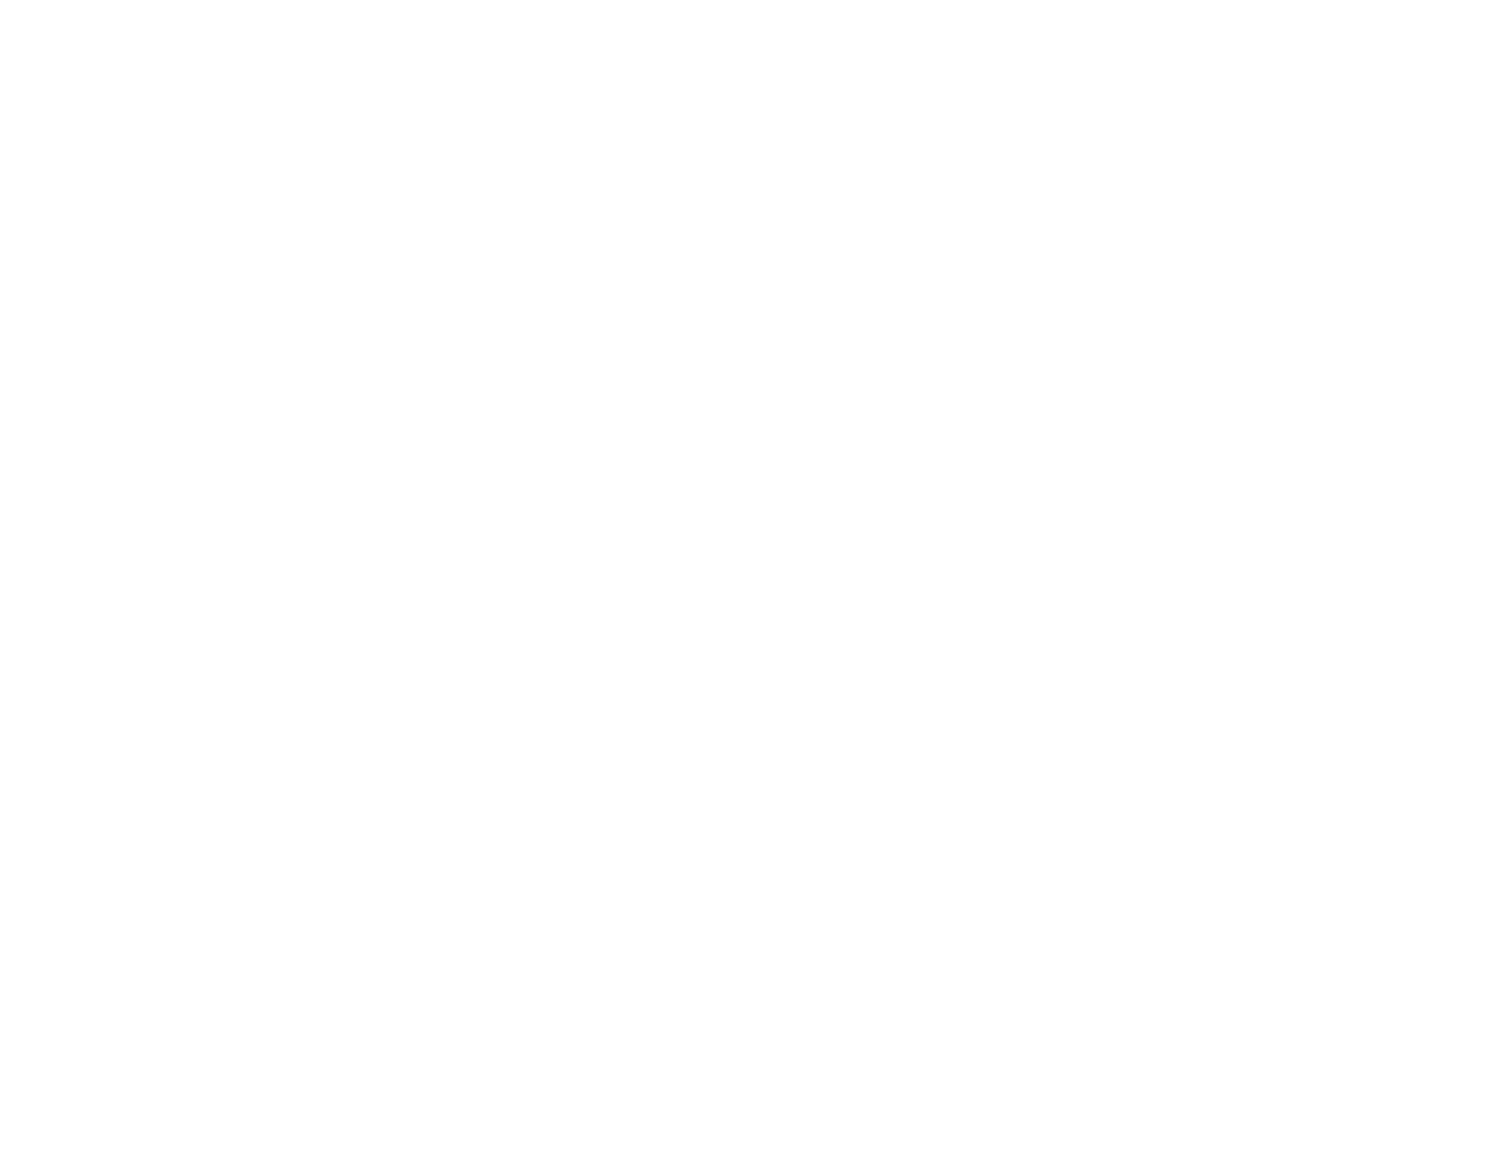 The Green Ace